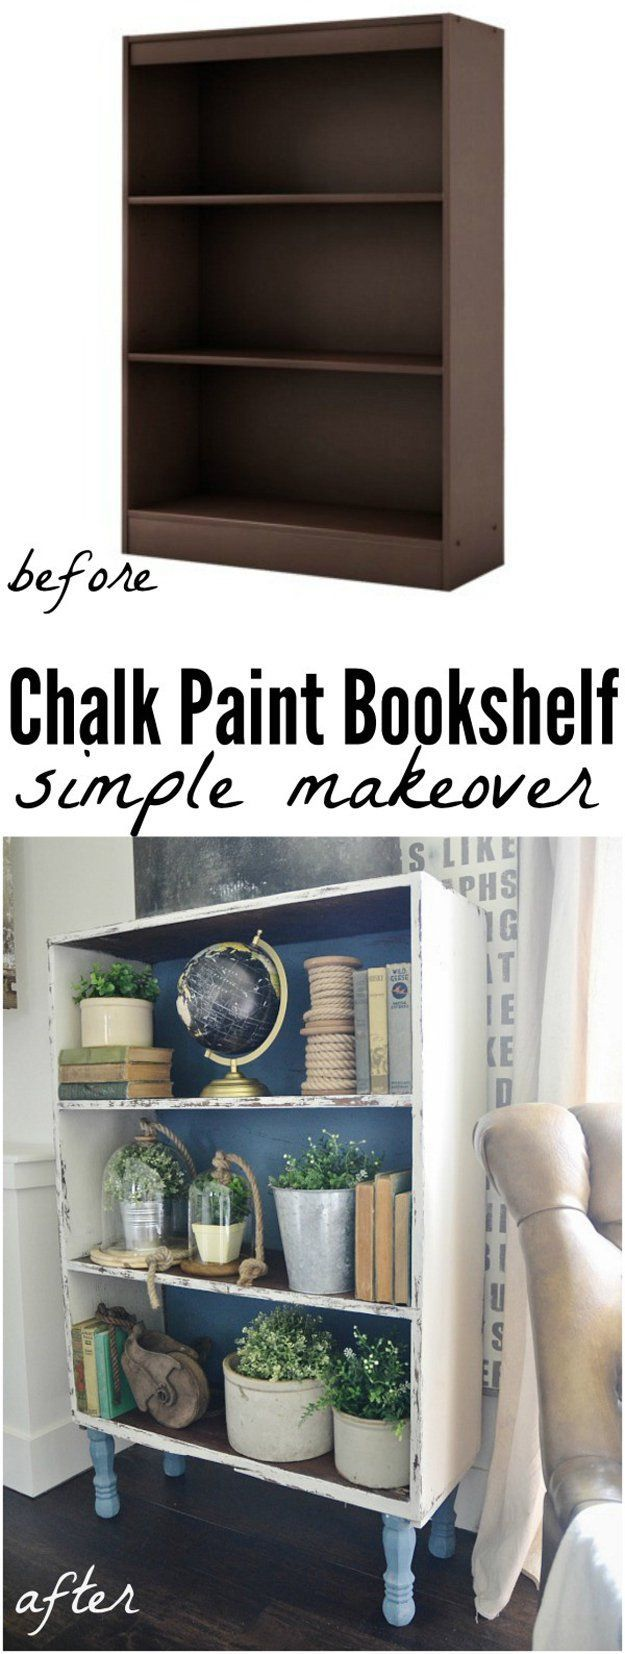 DIY Chalk Paint Furniture Makeover Project | Chalk Paint Bookshelf Makeover by DIY Ready at http://diyready.com/16-more-diy-chalk-paint-furniture-ideas/